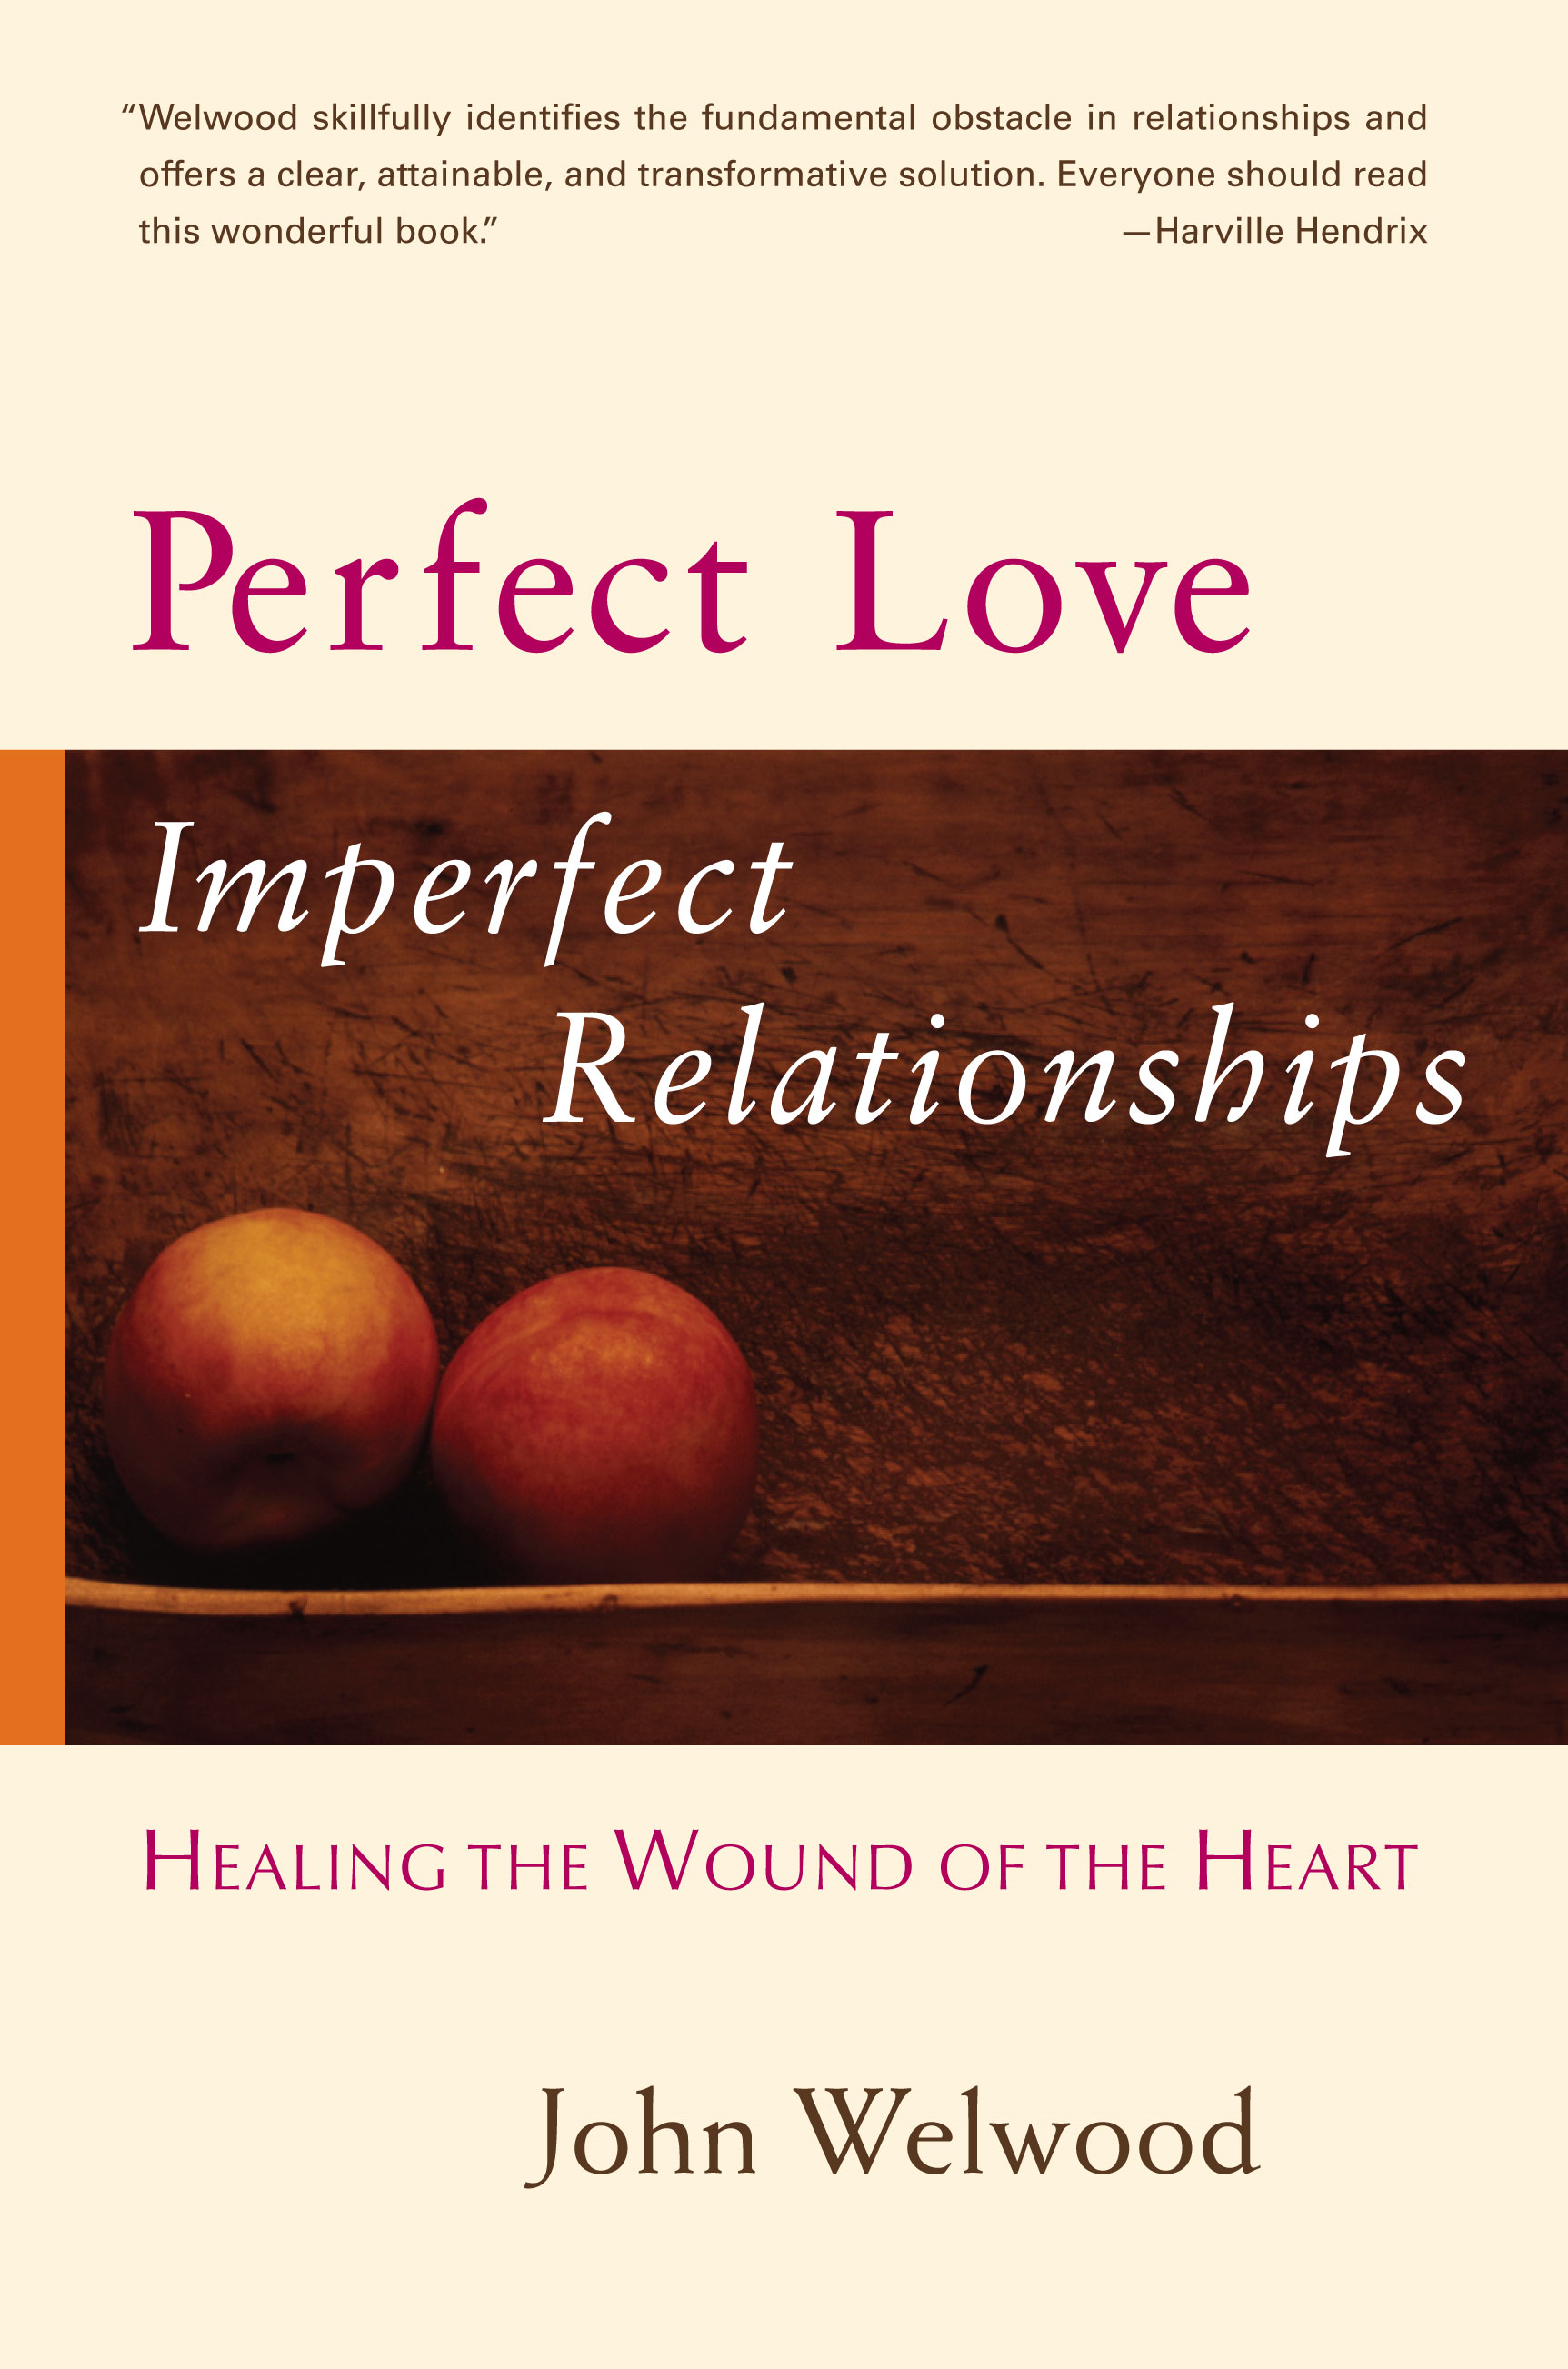 Perfect Love, Imperfect Relationships: Healing the Wound of the Heart By: John Welwood